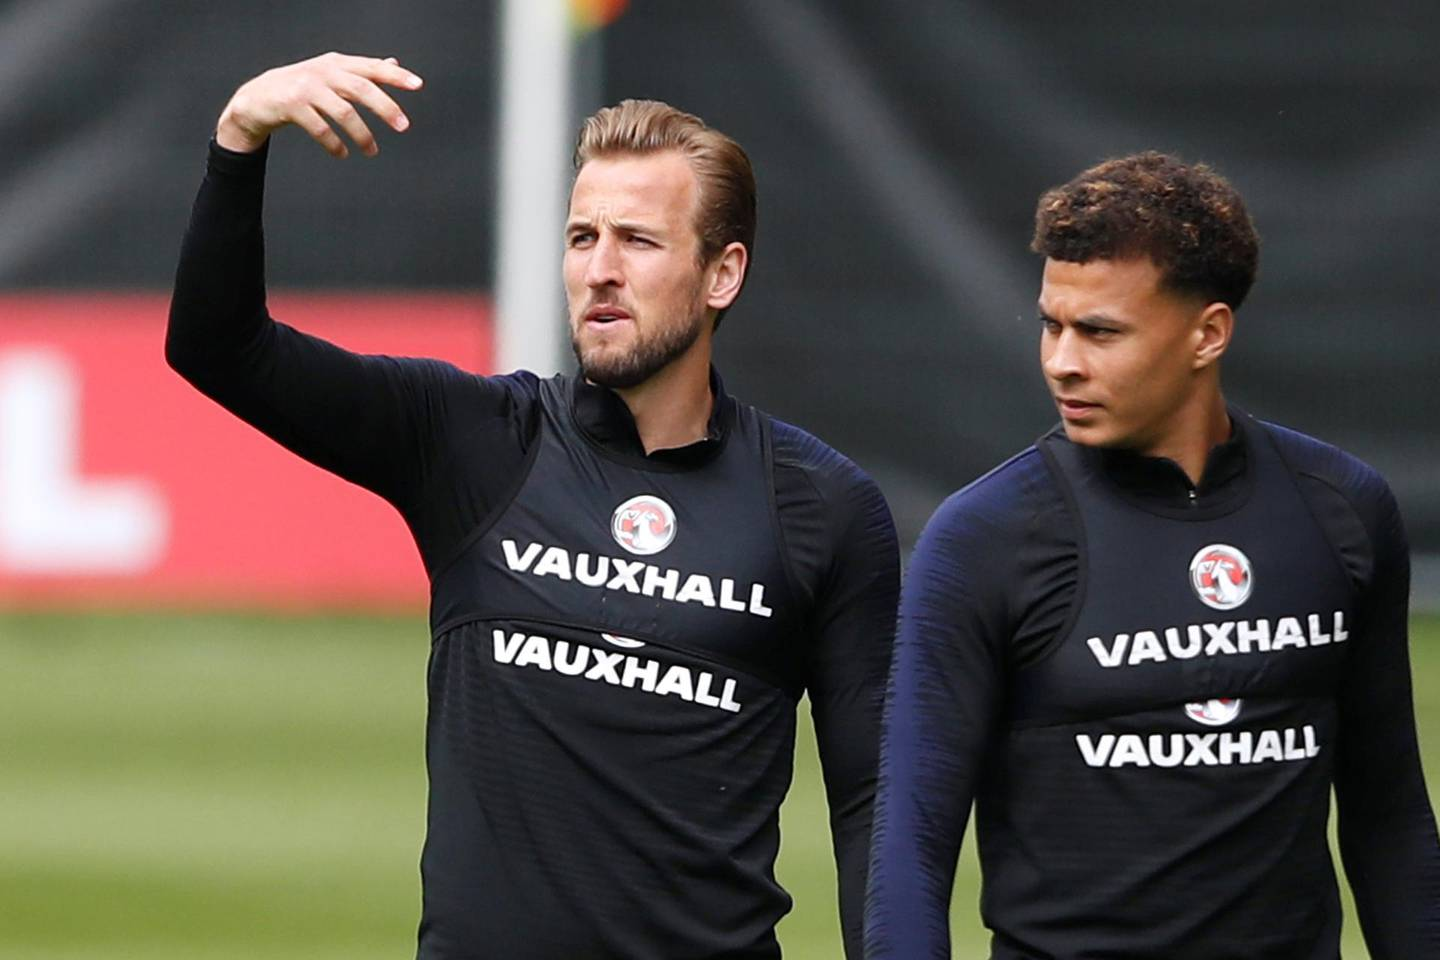 Soccer Football - England Training - The Grove Hotel, Watford, Britain - June 1, 2018   England's Harry Kane and Dele Alli during training   Action Images via Reuters/Carl Recine